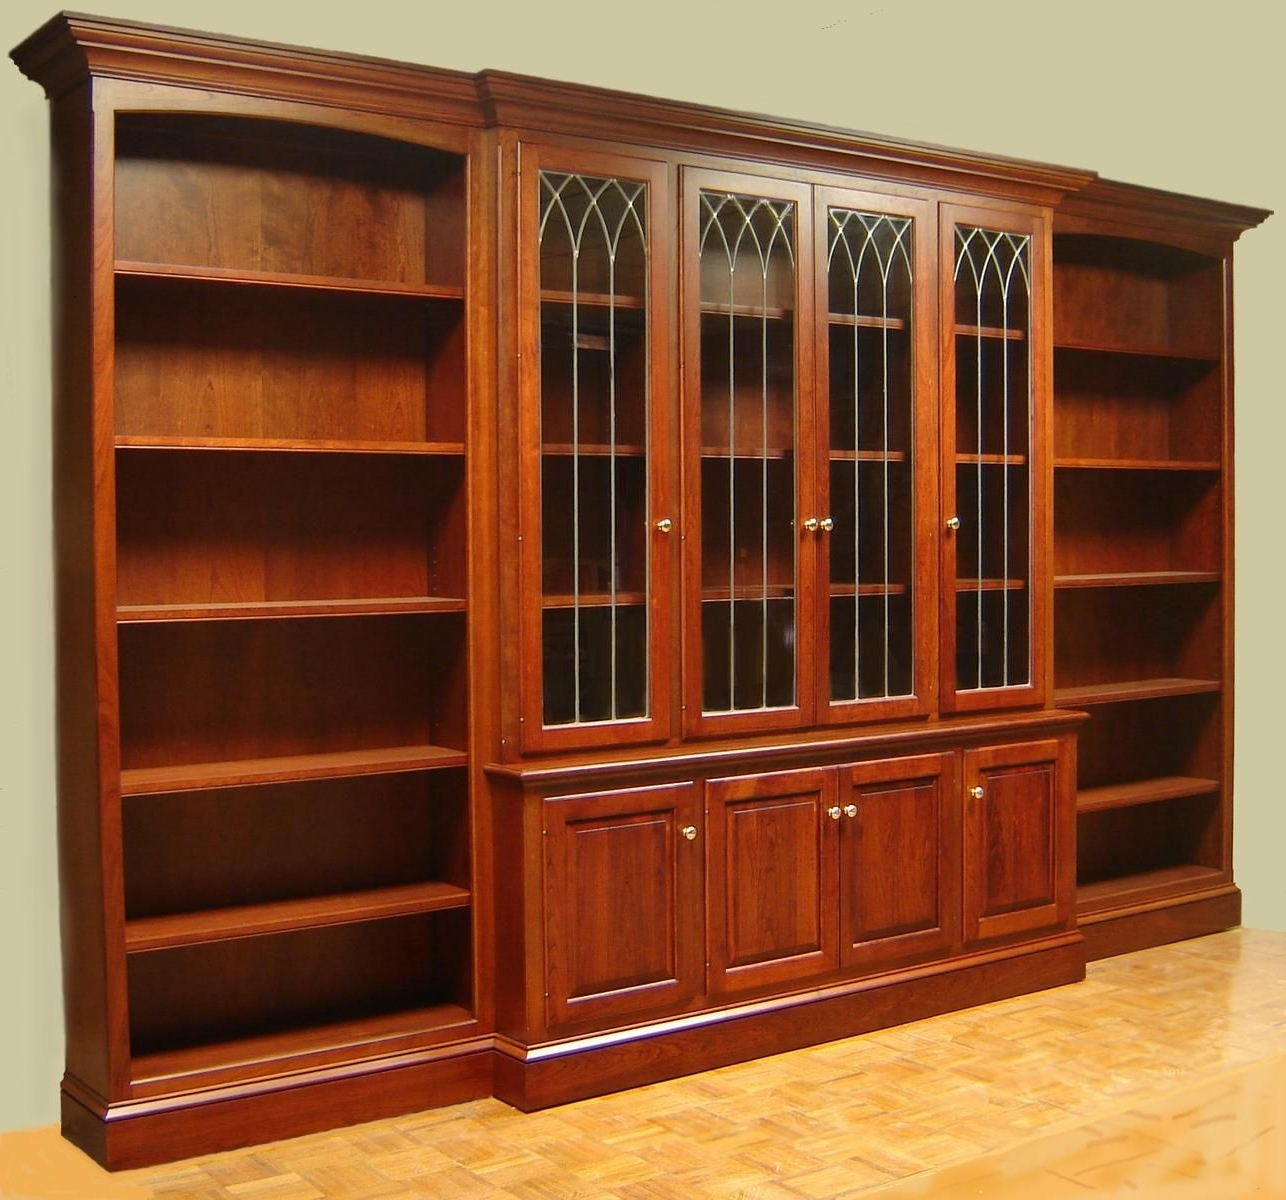 Cherry Bookcases Within Fashionable Hand Crafted Cherry Bookcase With Leaded Glass Doors And Open Side (View 4 of 15)